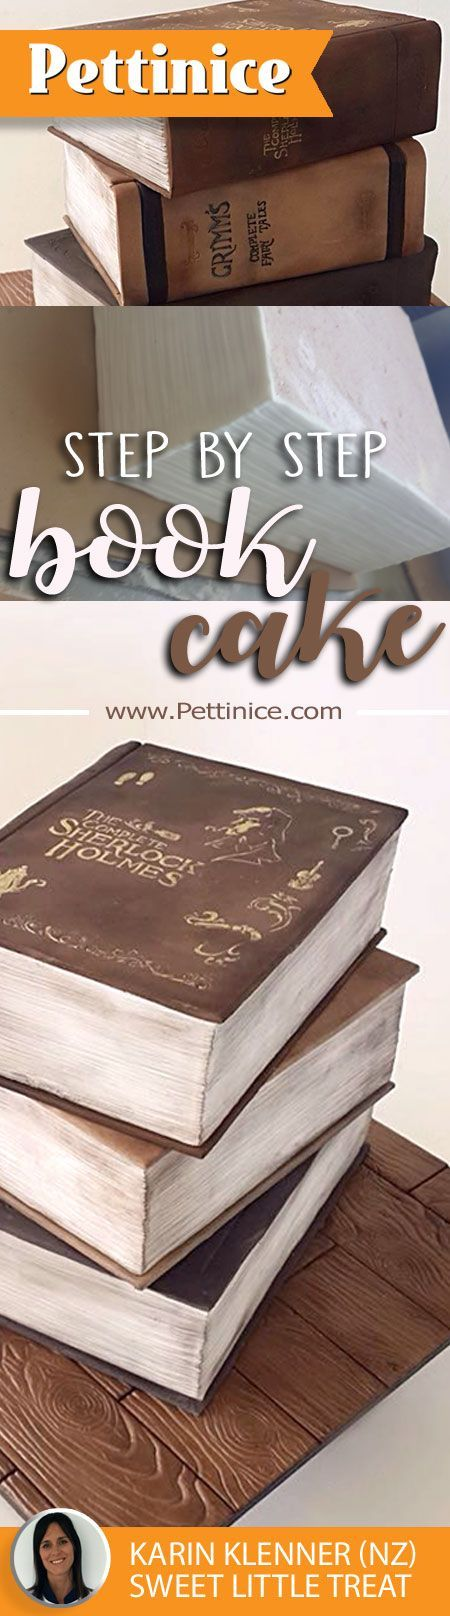 Step by step tutorial for making a 3D book cake or stacked book cake.